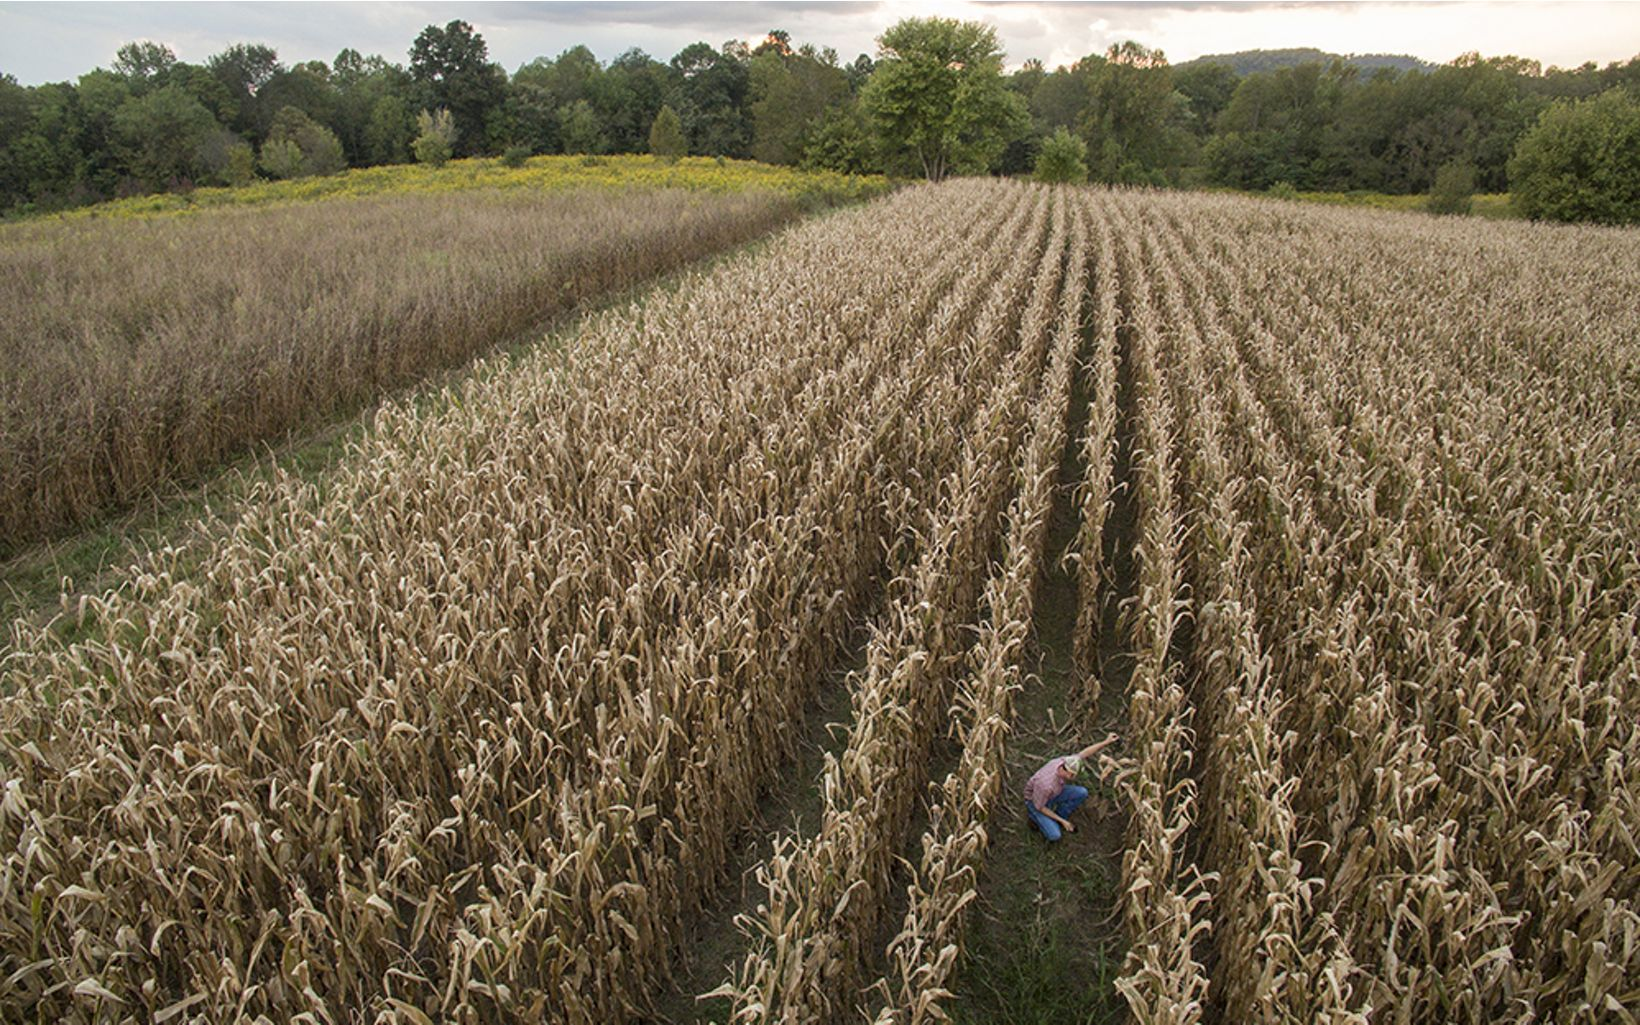 A farmer in the middle of a large corn field.